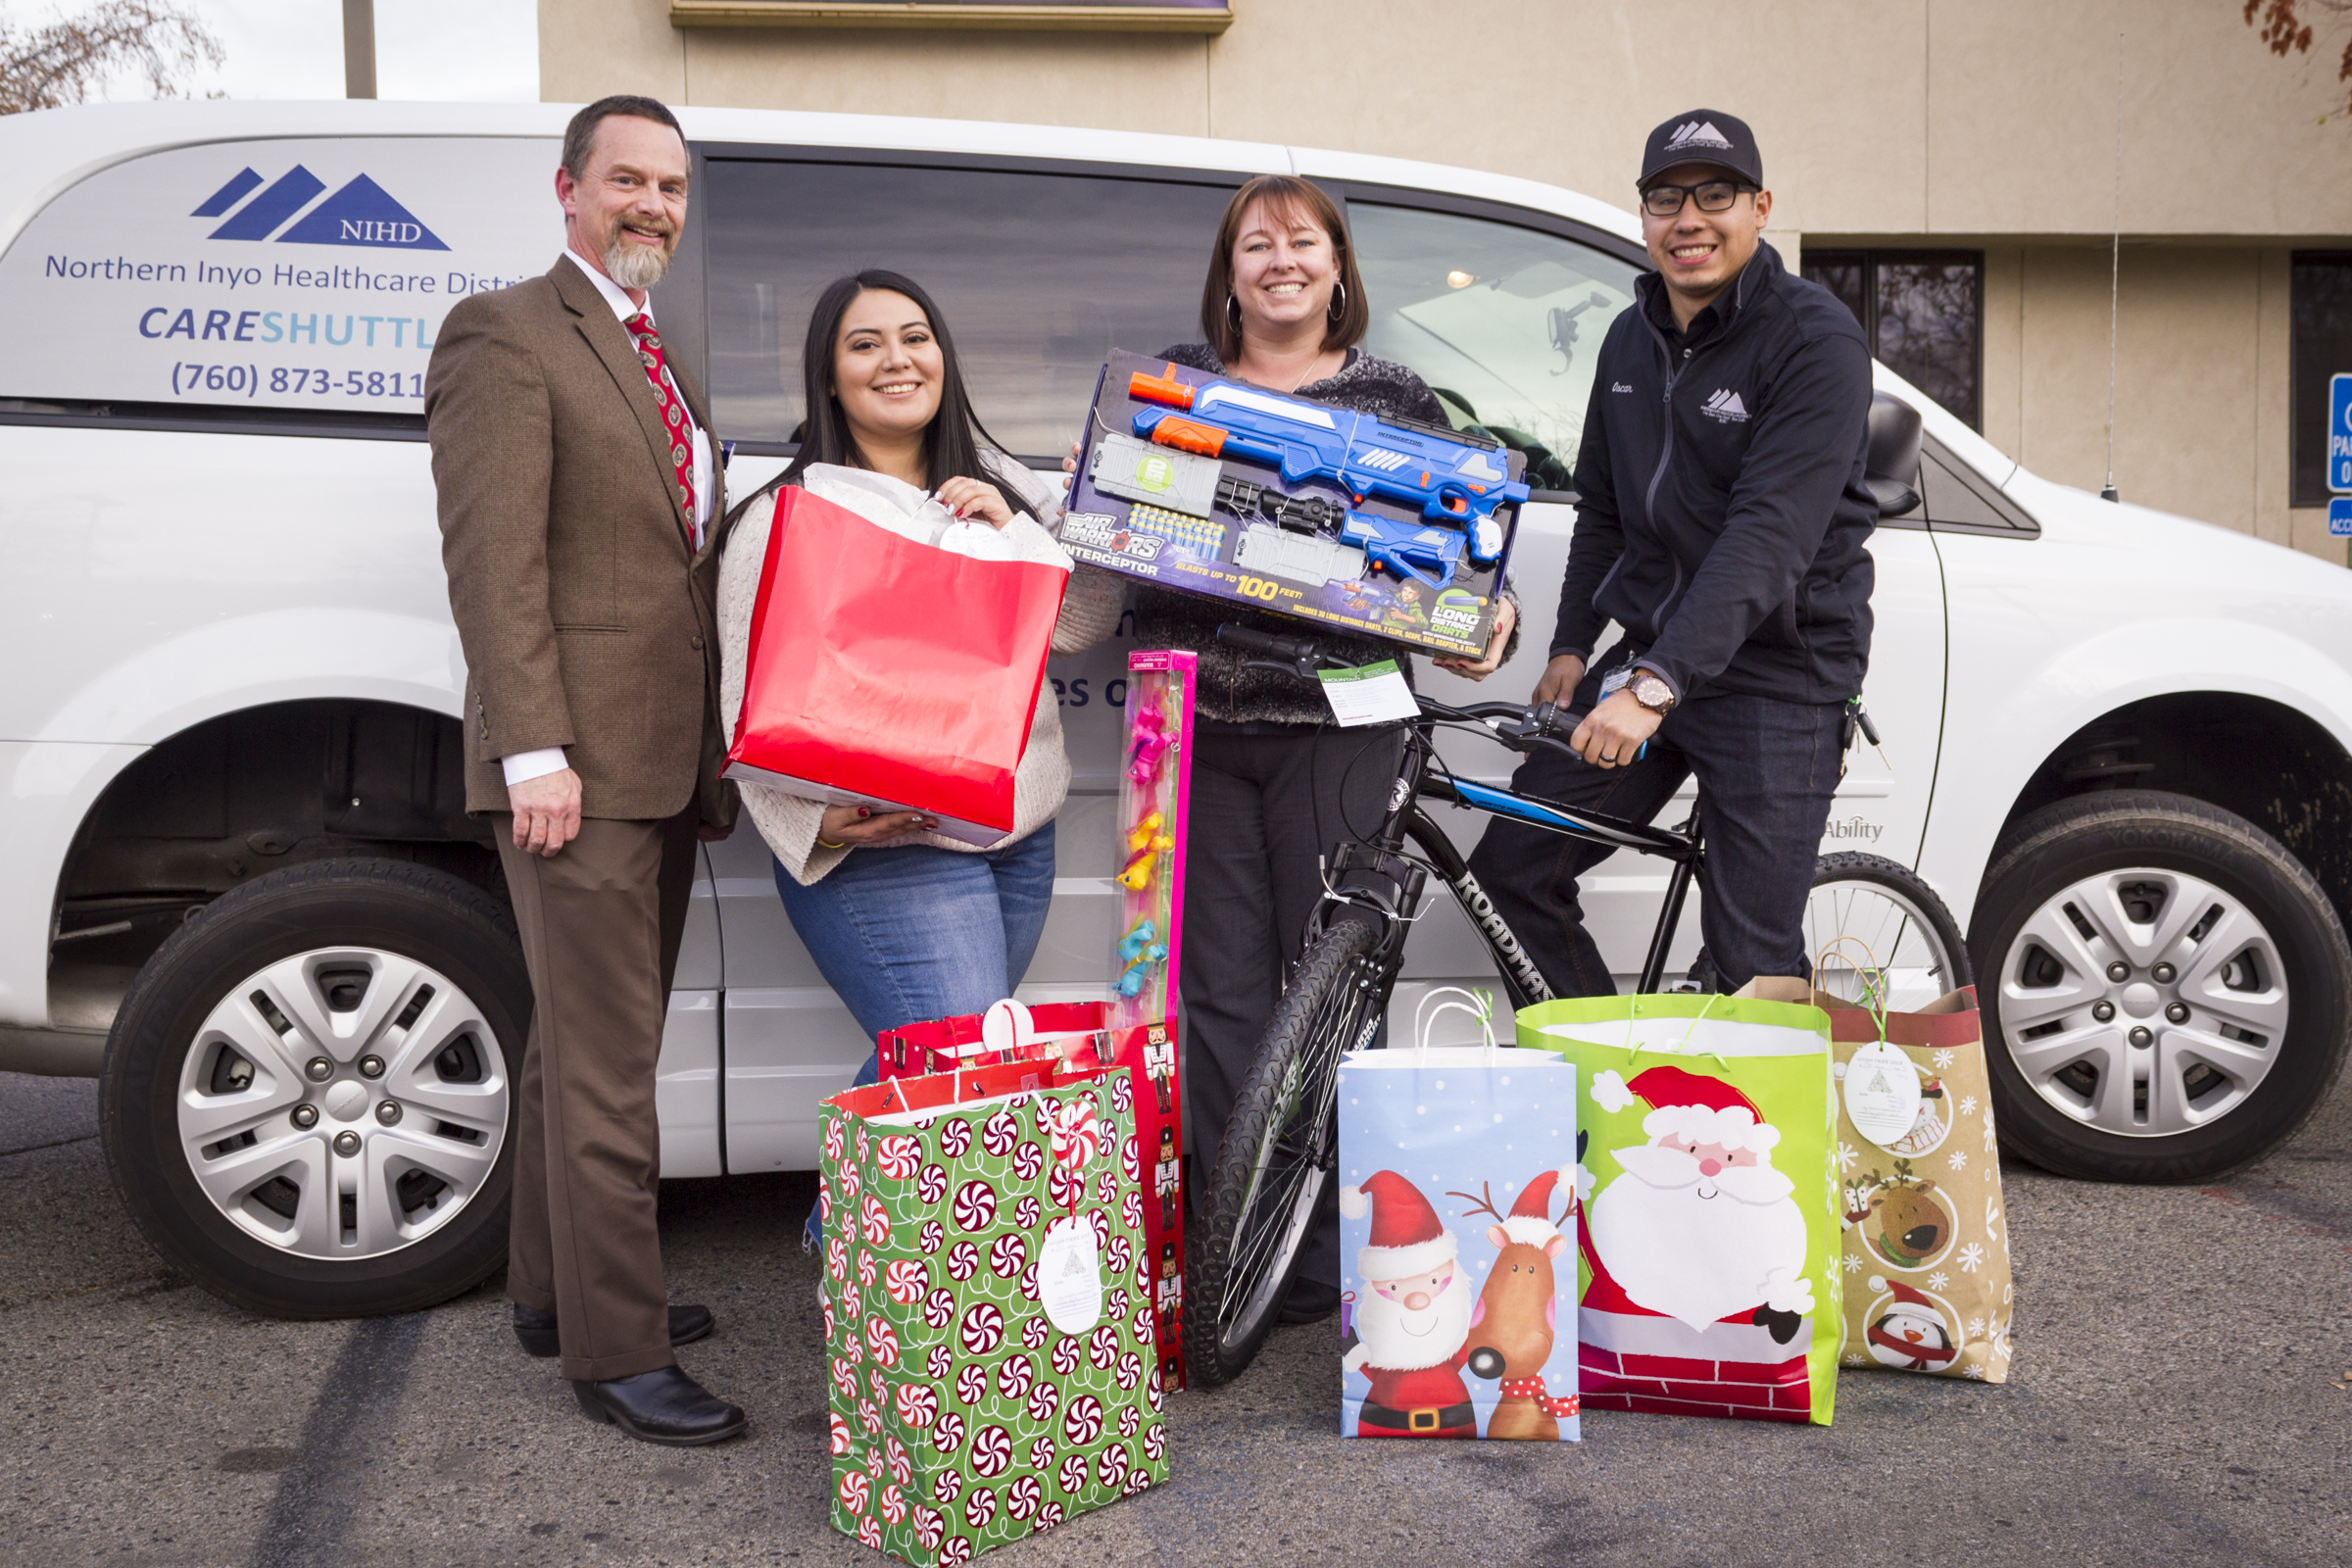 Wish Tree Delivery:  The employees of Northern Inyo Healthcare District made a difference in the Christmas holiday of 47 local children with their annual holiday gift drive for IMACA's Wish Tree program. Shown here with a sampling of the gifts provided are, from left, NIHD CEO Dr. Kevin S. Flanigan, Michelle Garcia, Kristen Bernasconi and Oscar Lopez-Esparza.  Photo by Barbara Laughon/Northern Inyo Healthcare District